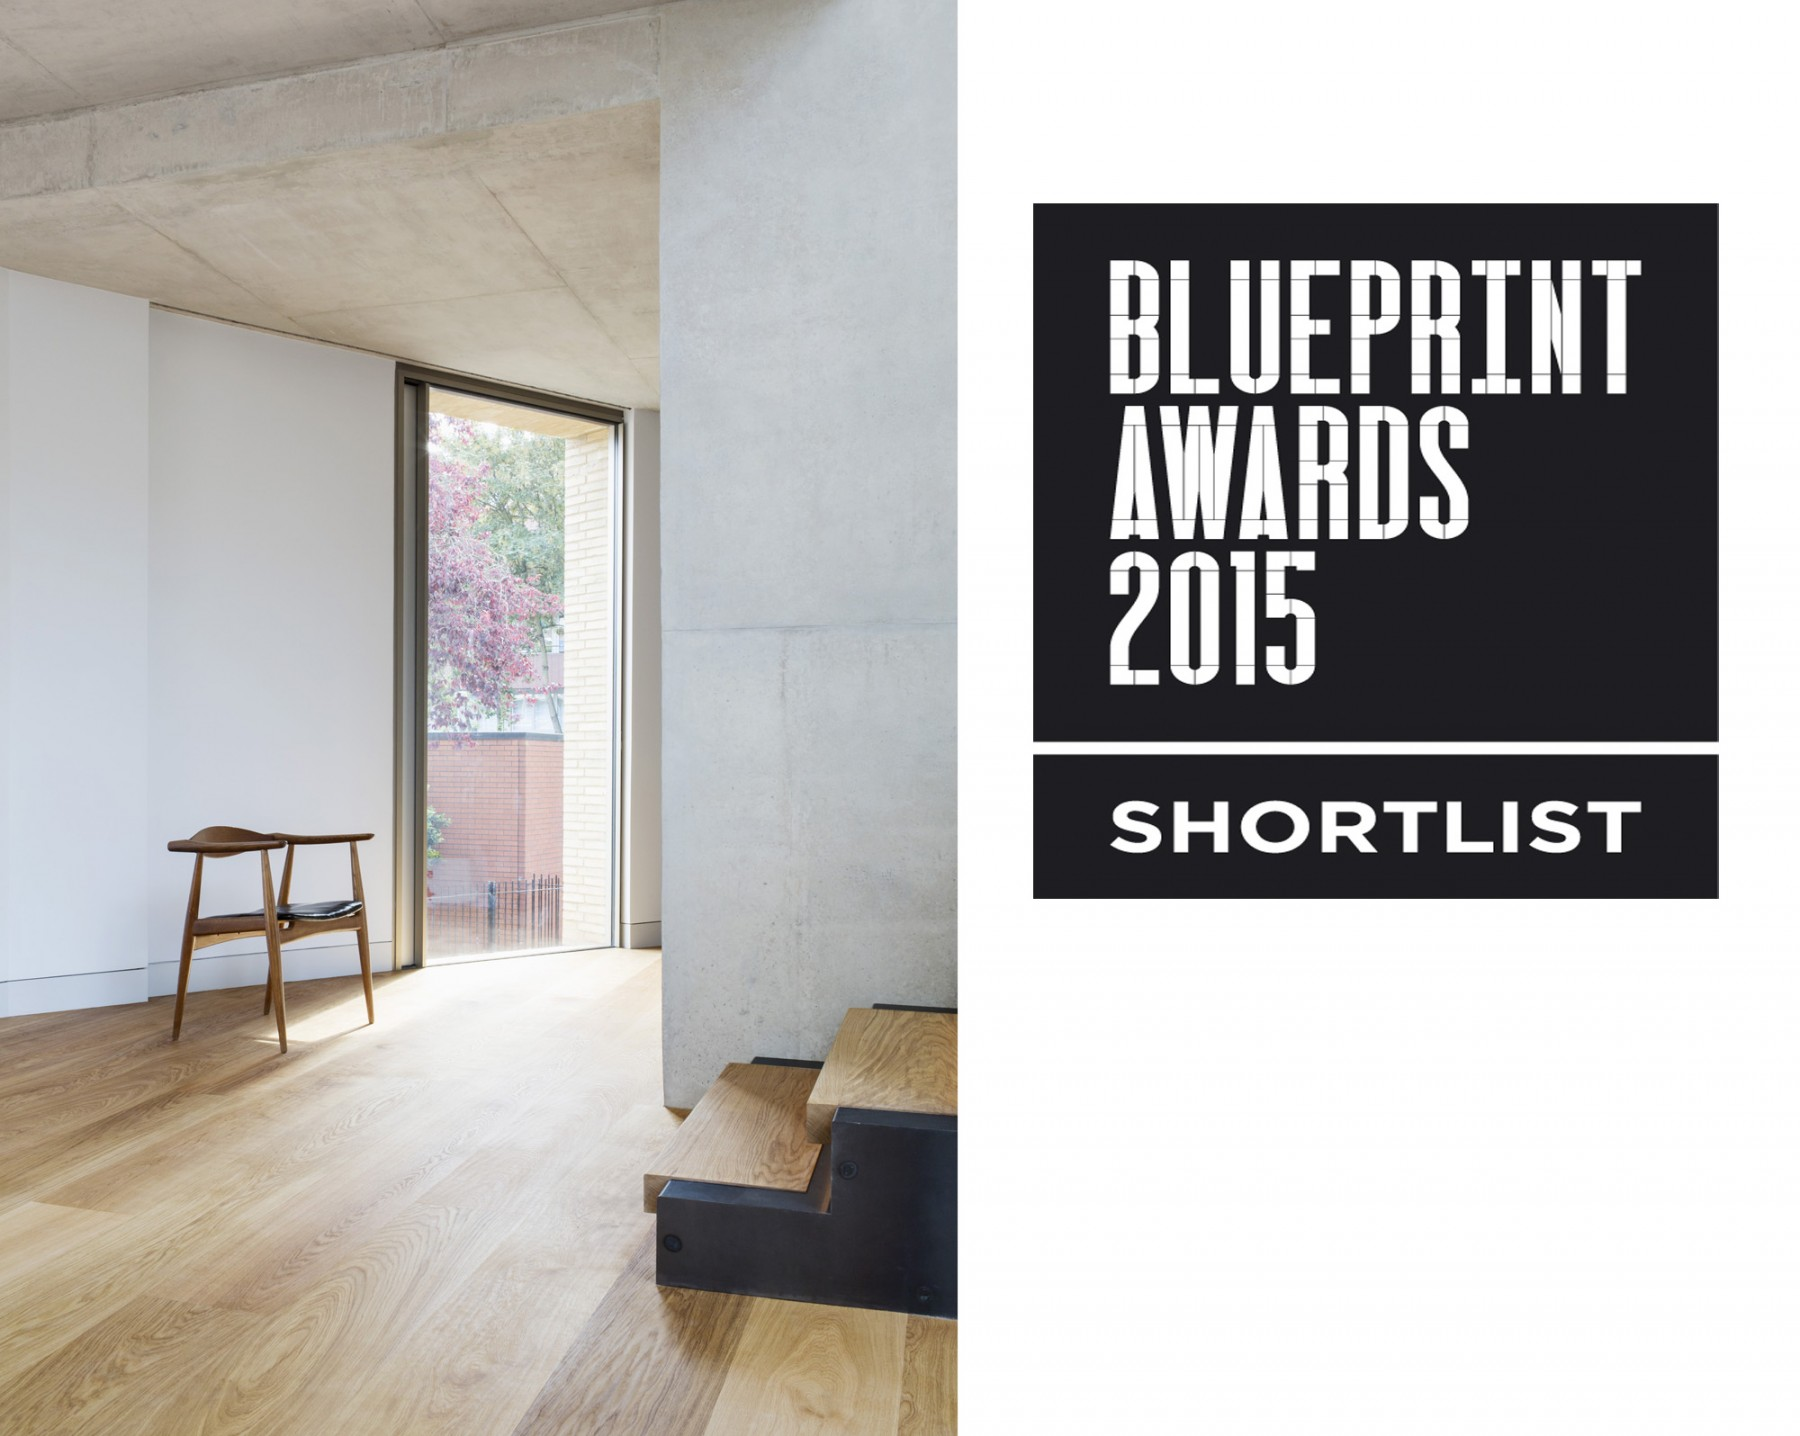 Levring house shortlisted for blueprint award jamie fobert architects ocjh704 jfa house 2 malvernweather Gallery